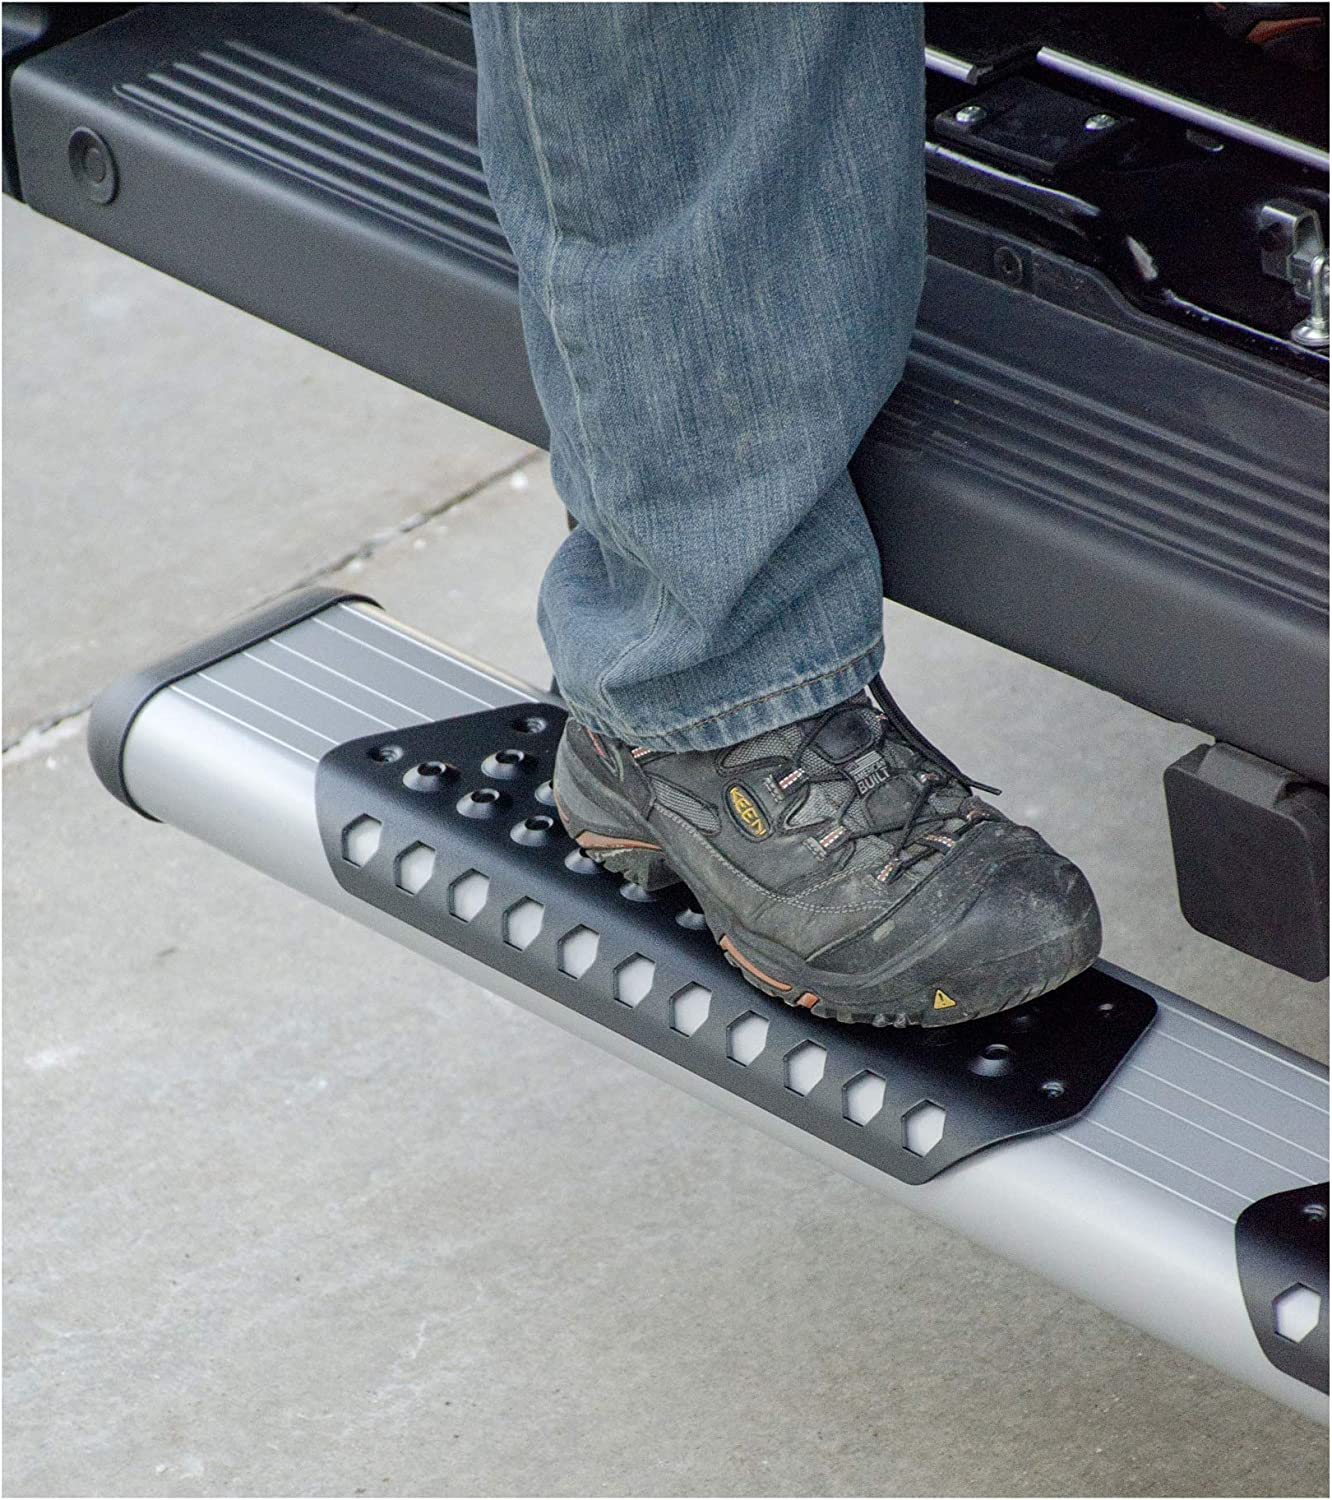 6 Inch Silver Powder-Coated Aluminum Luverne 583254-571473 O-Mega II Oval Side Step with Non-Skid Aluminum Step Pads